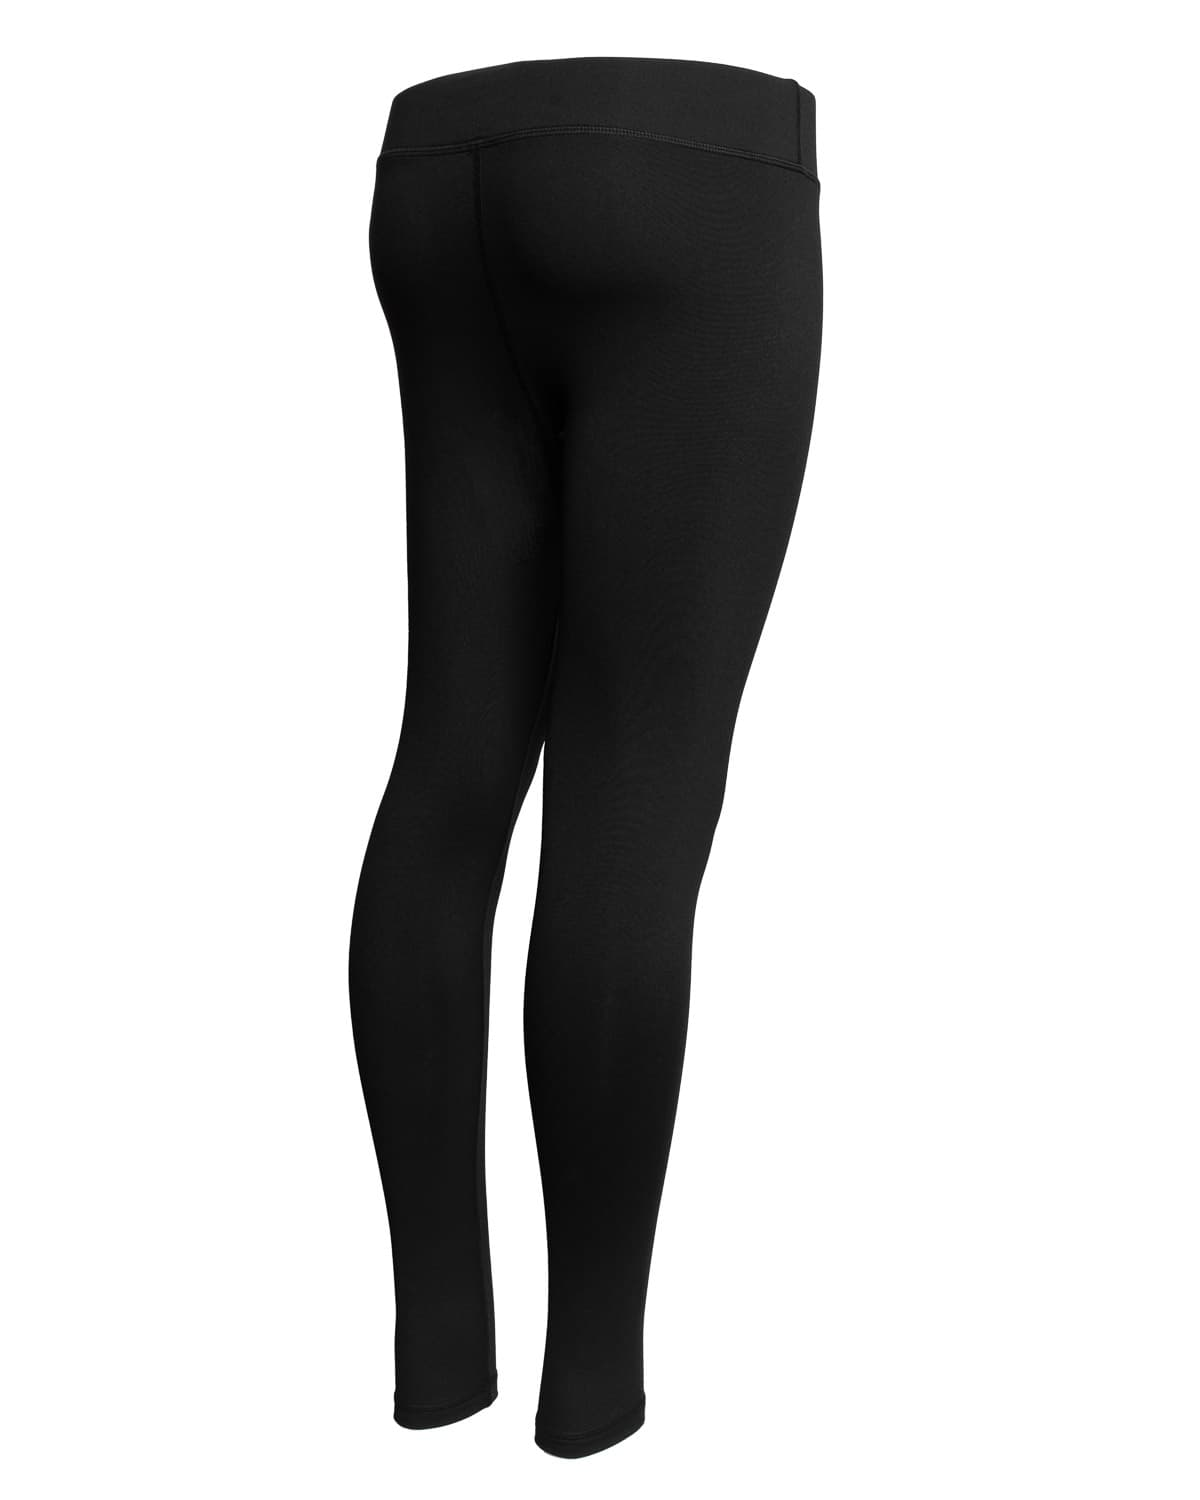 Subsidia Mid Waist Leggings - Black/Pink